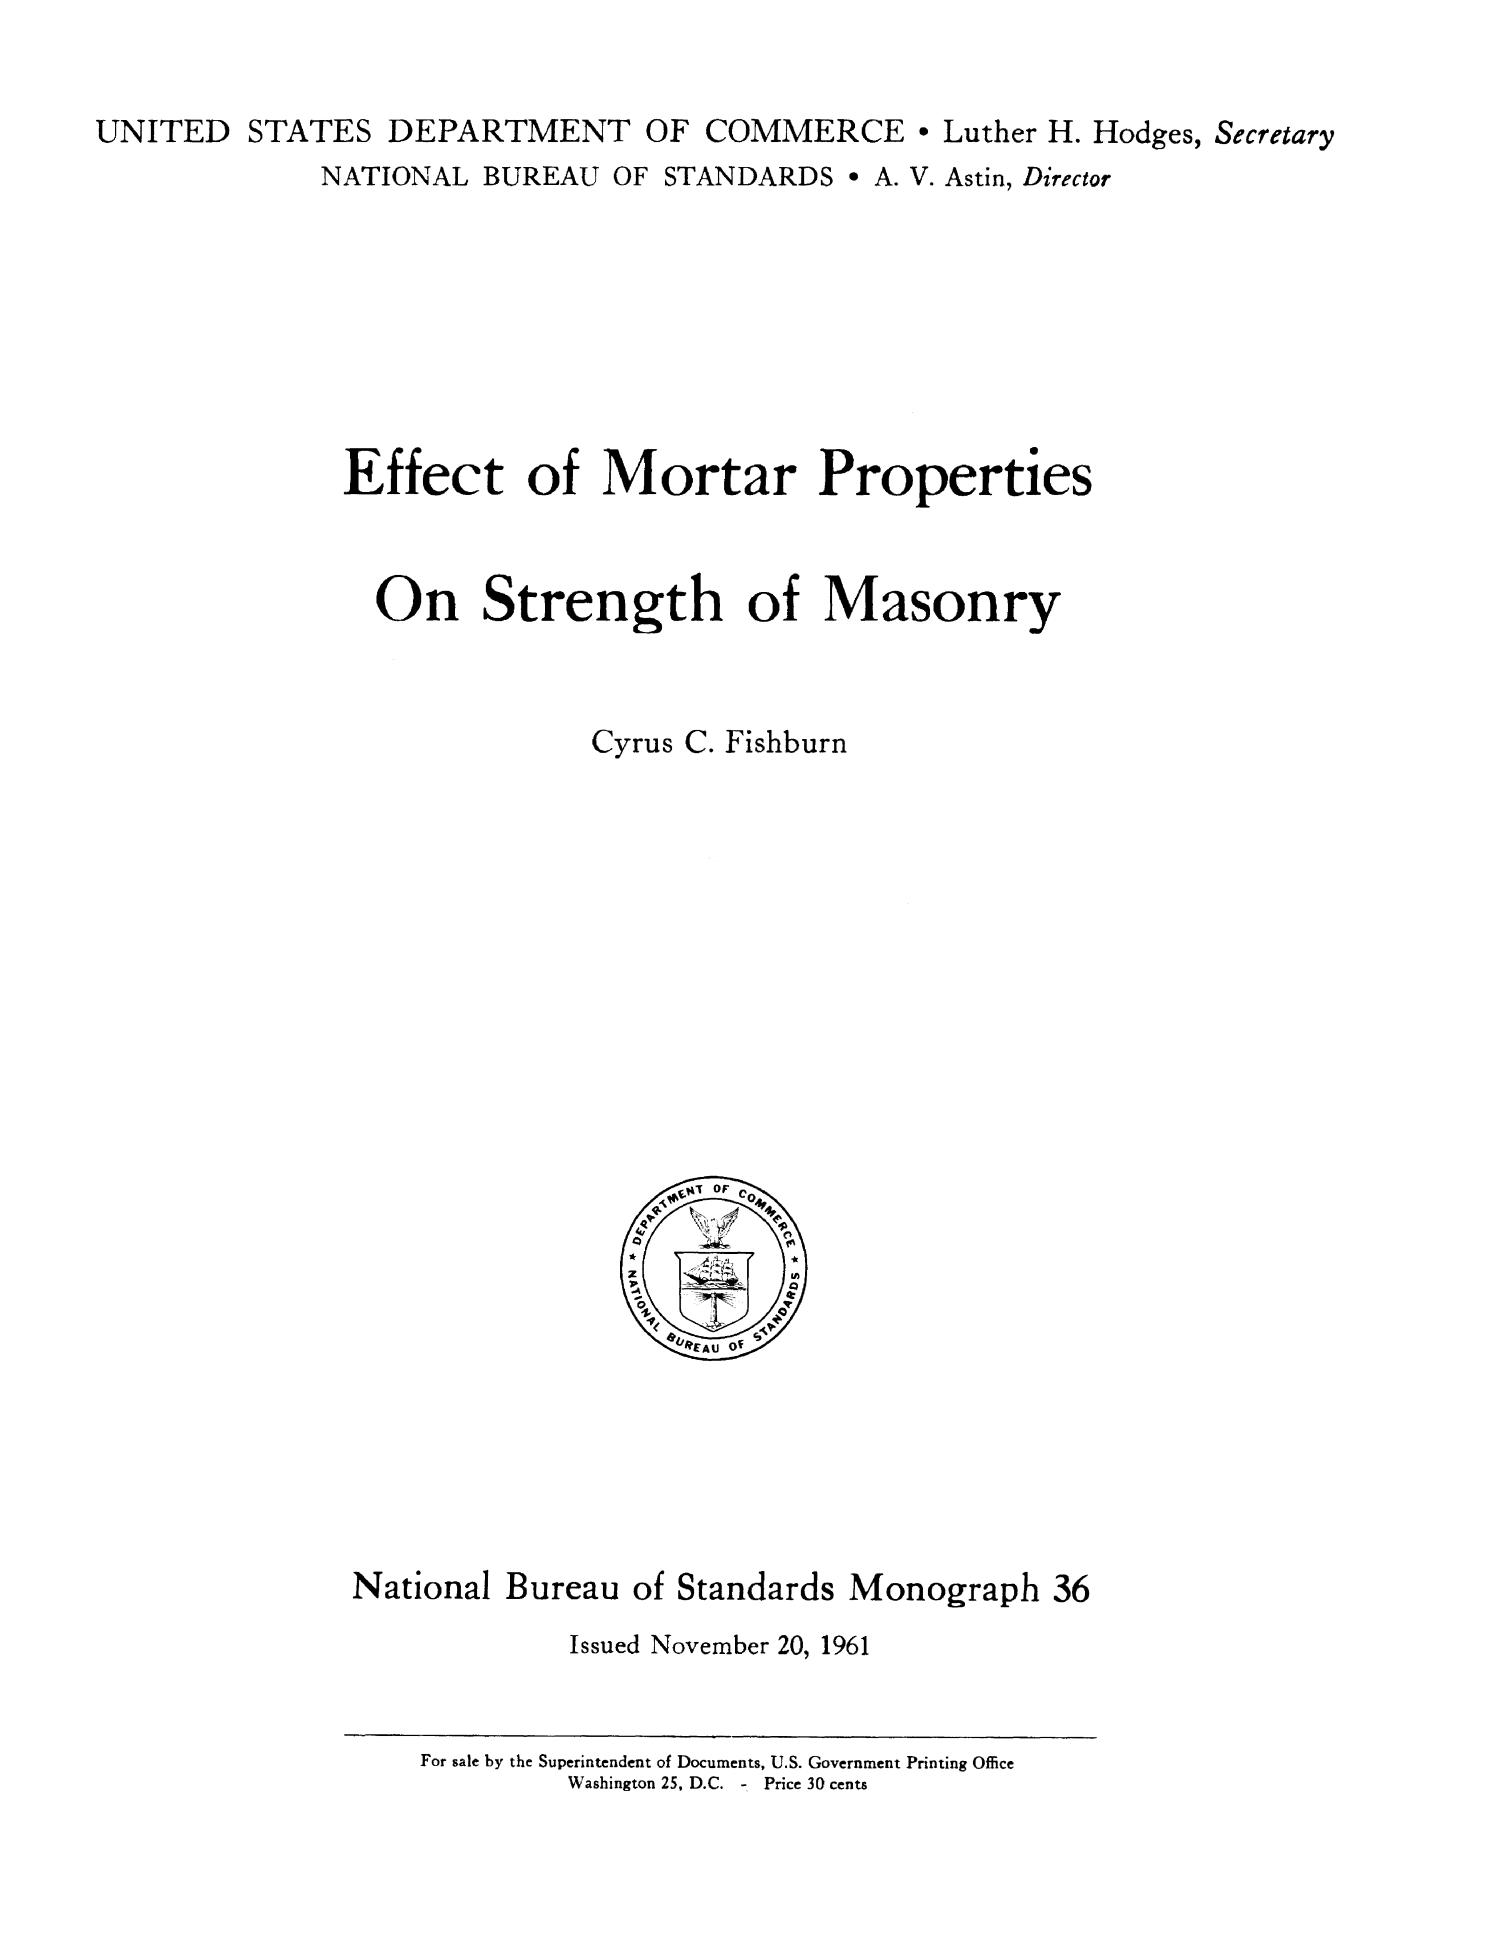 Effect of Mortar Properties on Strength of Masonry                                                                                                      i